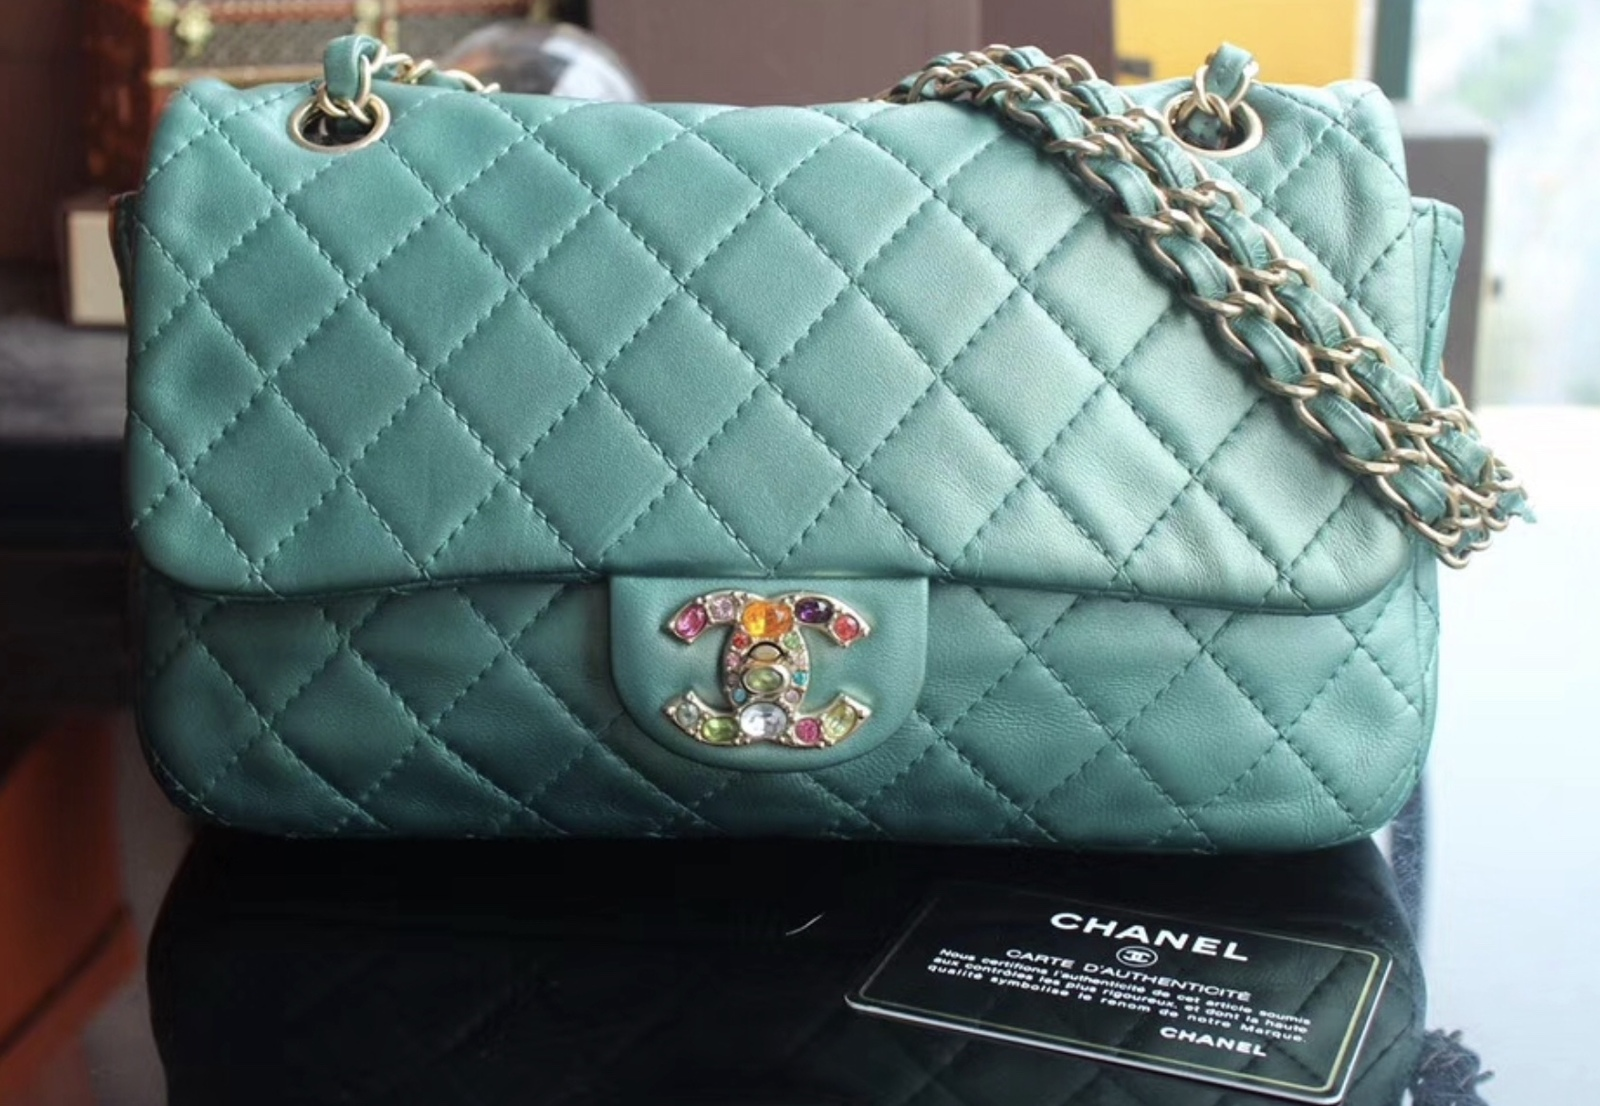 100% Authentic Chanel Limited Edition Turquoise Jewel CC Flap Bag GHW